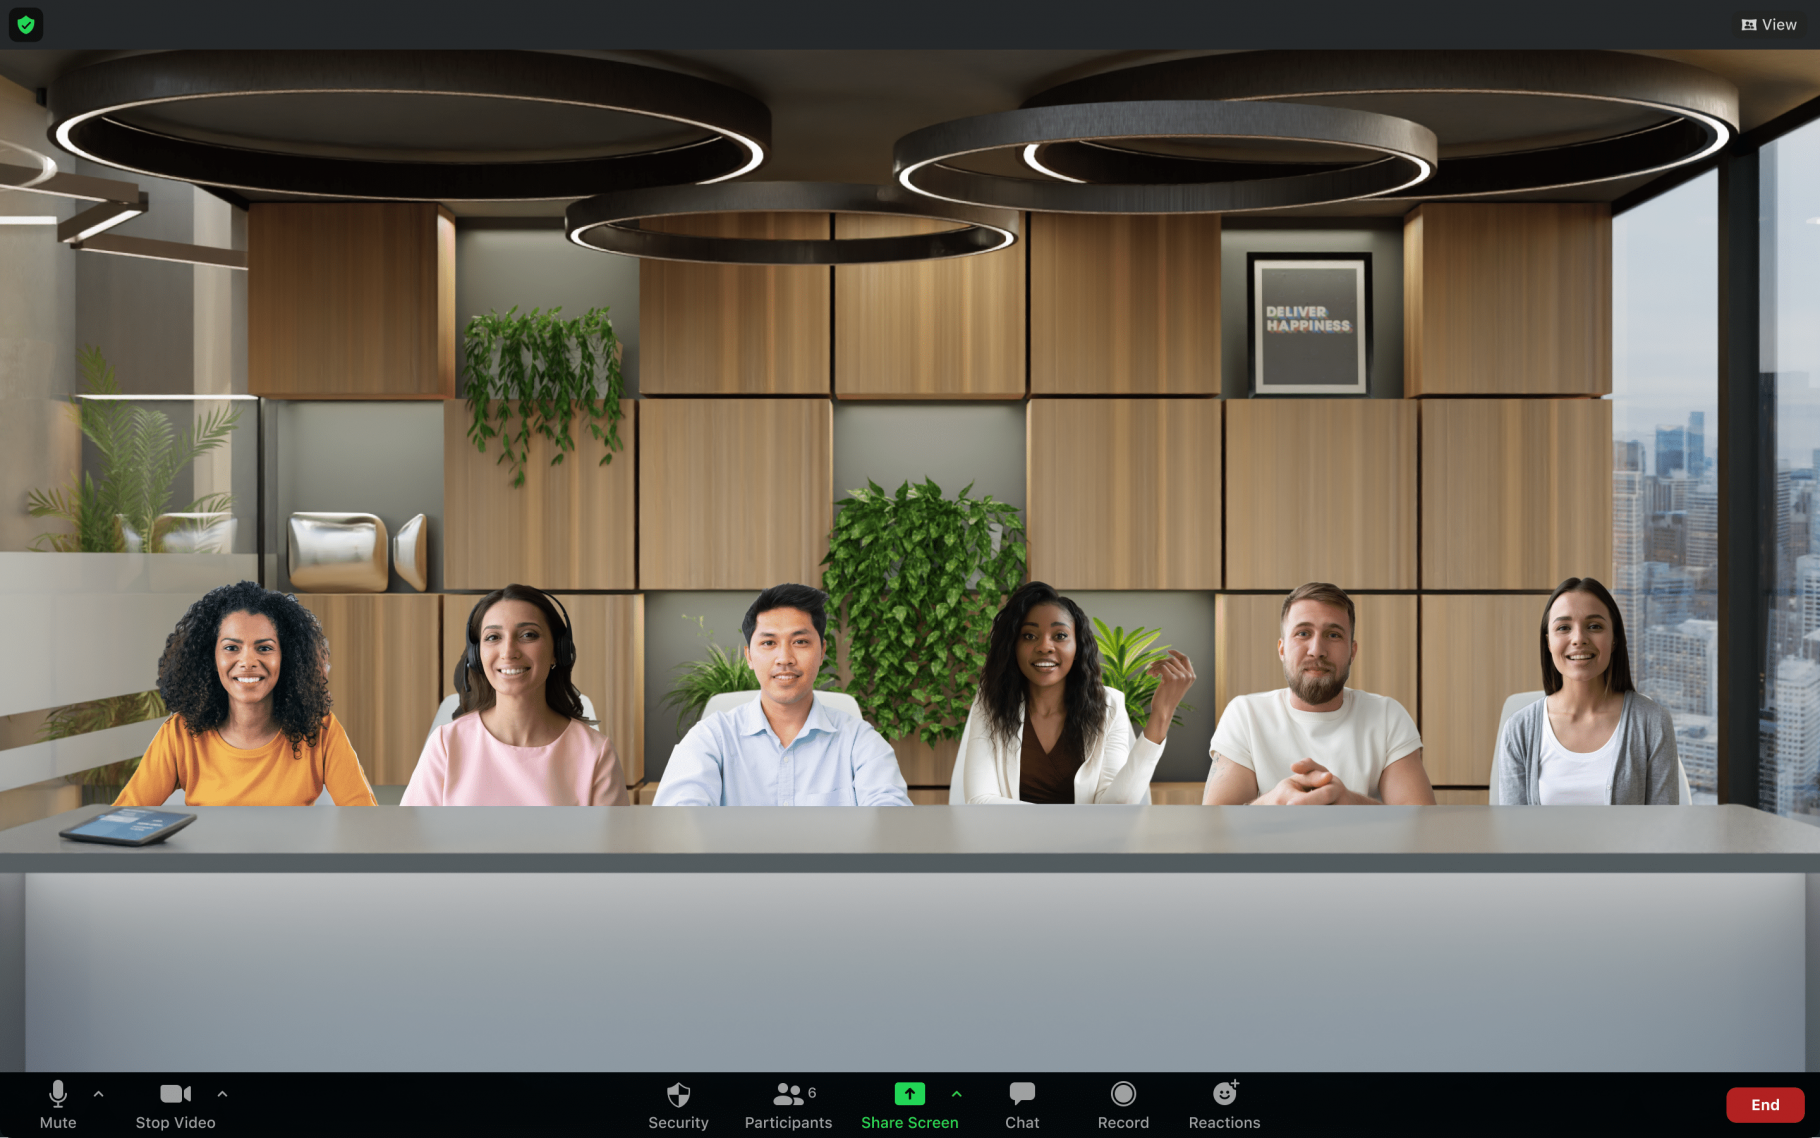 Introducing Immersive View, A Fun New Way to Meet